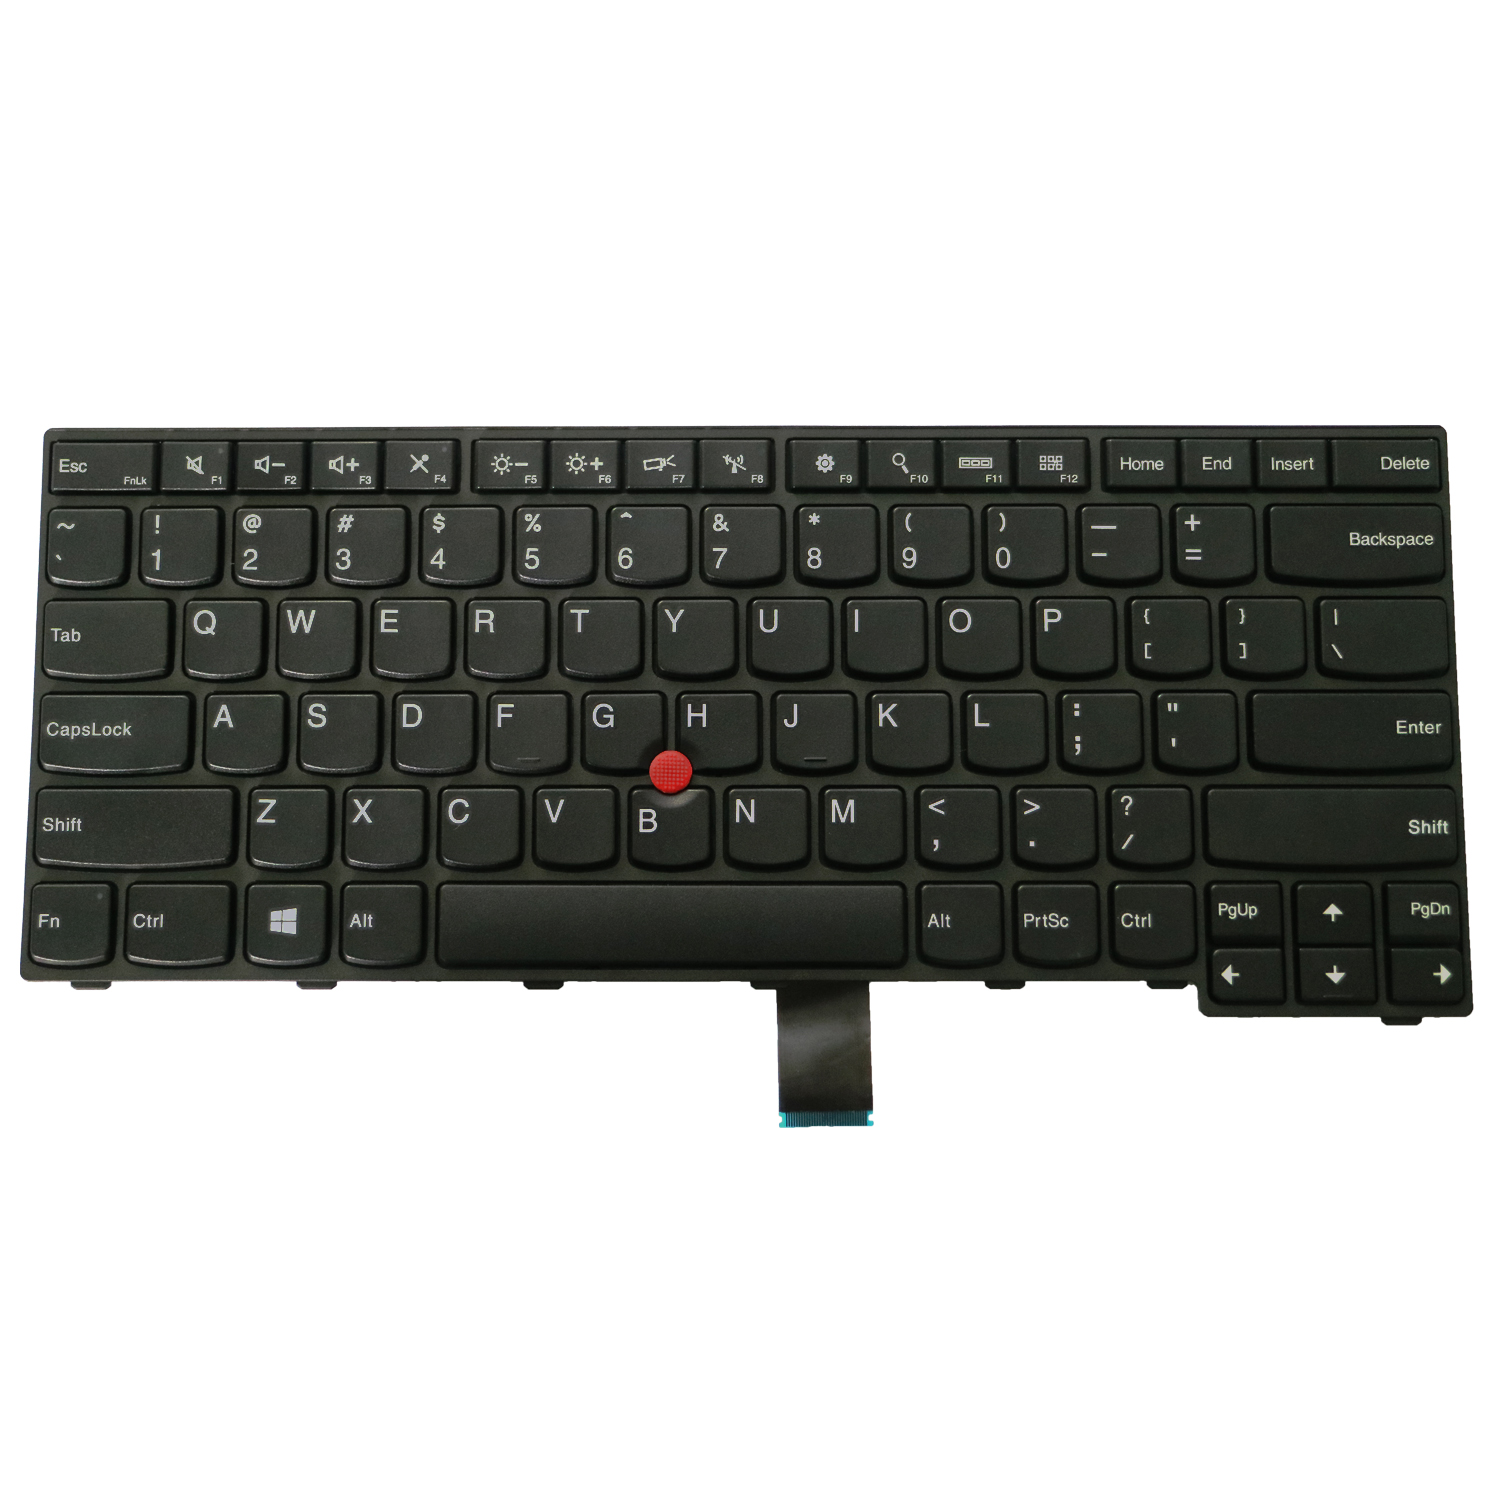 Laptop <font><b>Replacement</b></font> <font><b>Keyboard</b></font> for <font><b>Lenovo</b></font> <font><b>ThinkPad</b></font> <font><b>E450</b></font> E450c E455 E460 E465 W450 Laptop No Backlight image